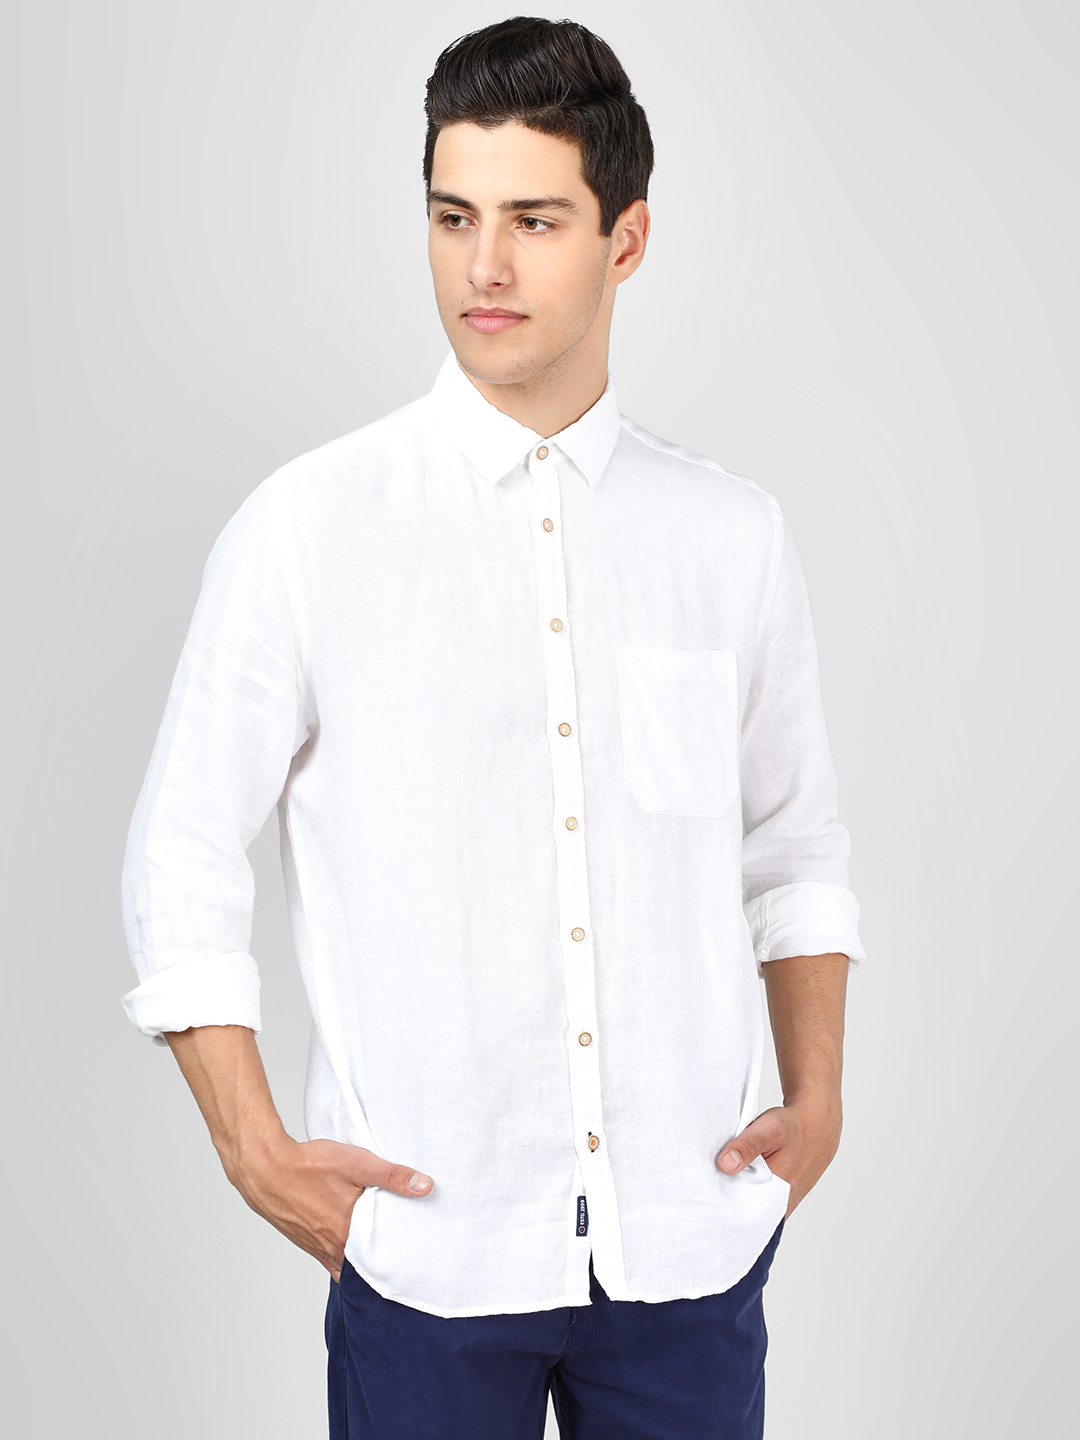 SCULLERS White Long Sleeve Casual Shirt 1